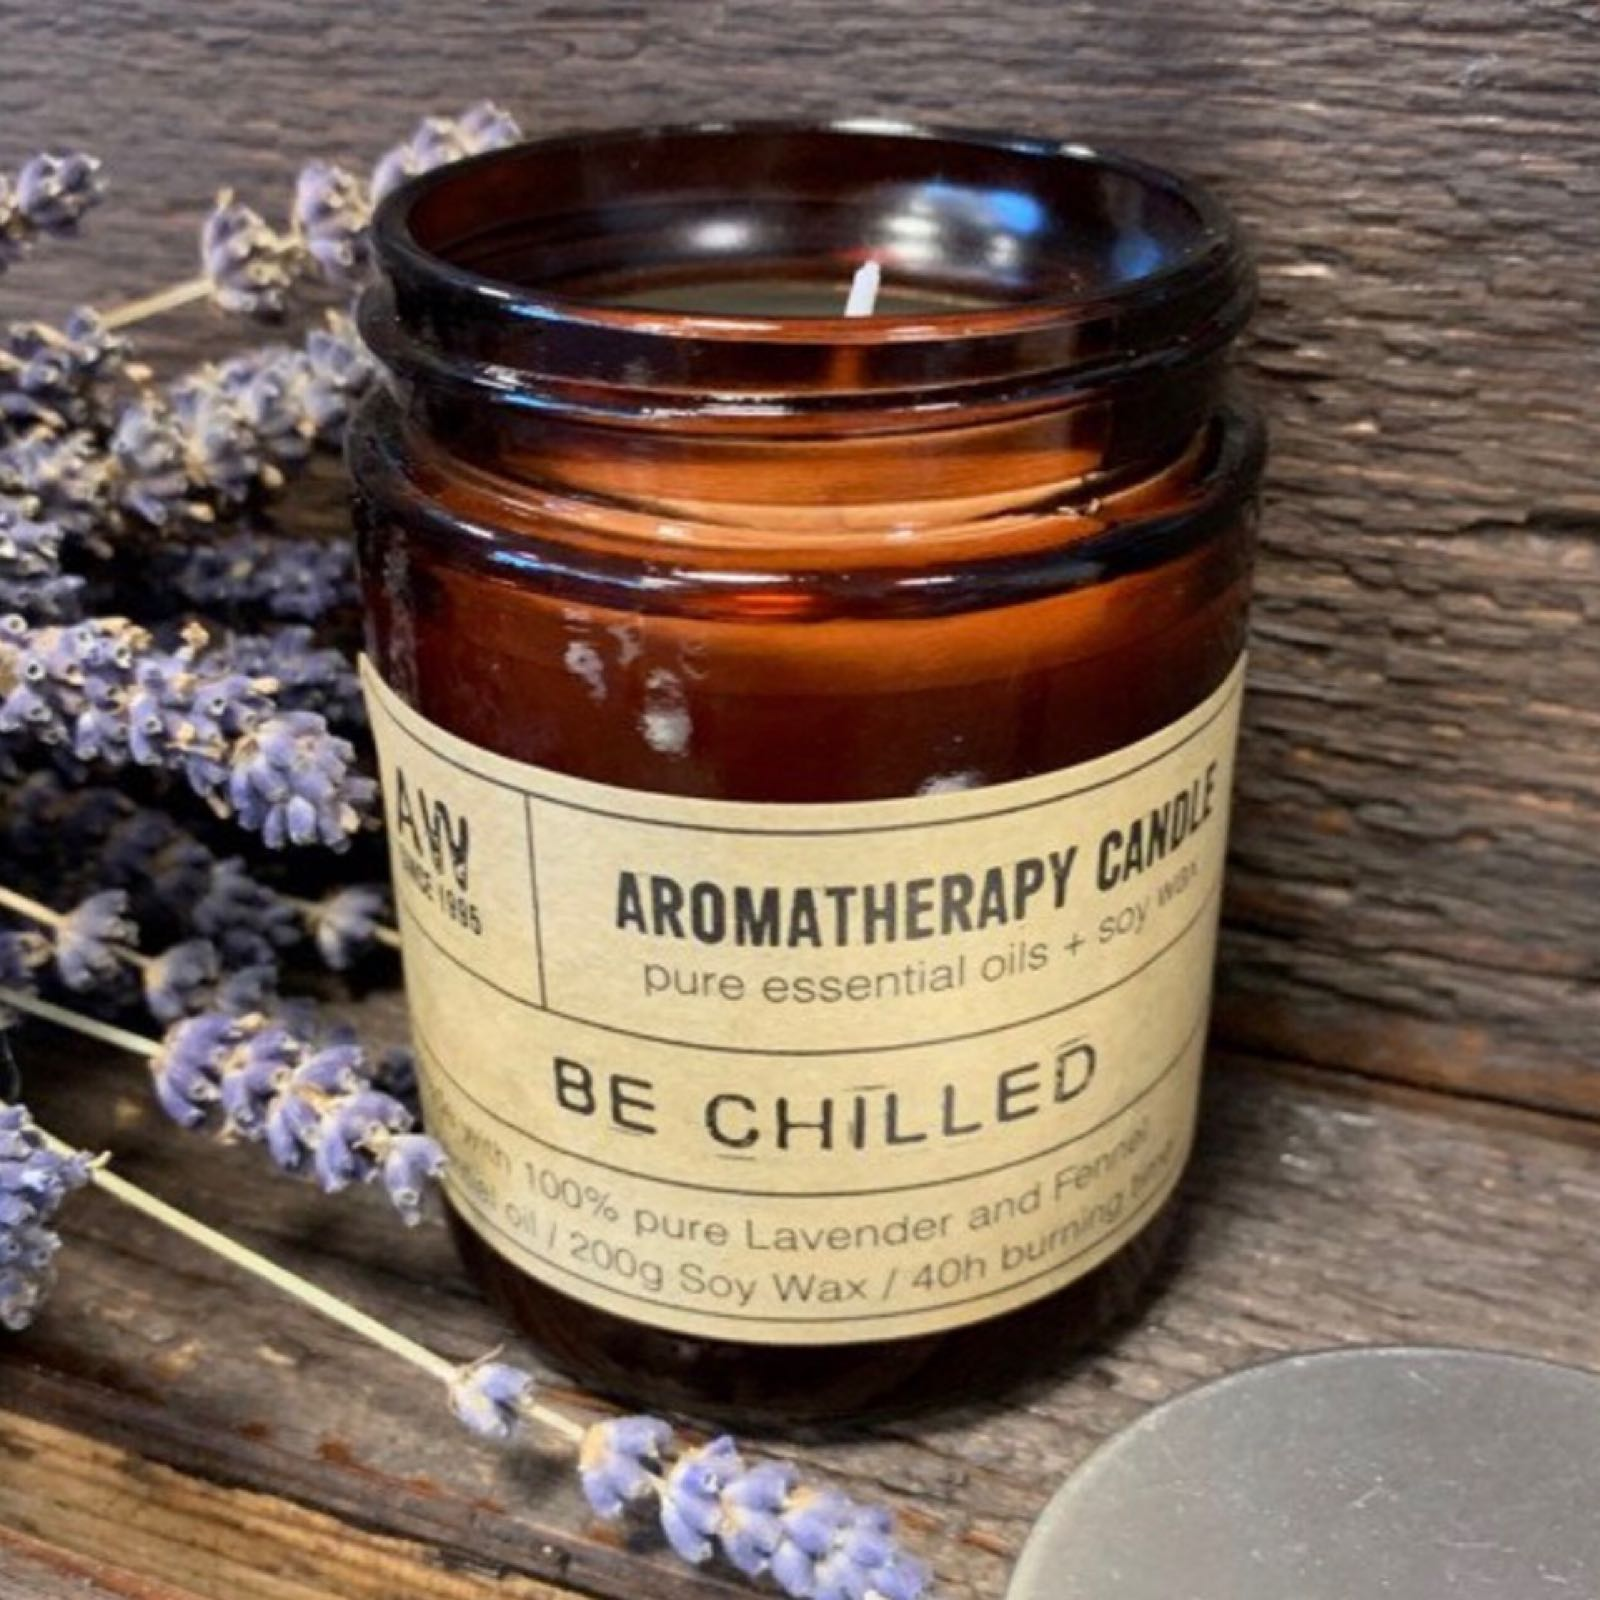 Be Chilled Aromatherapy Candle